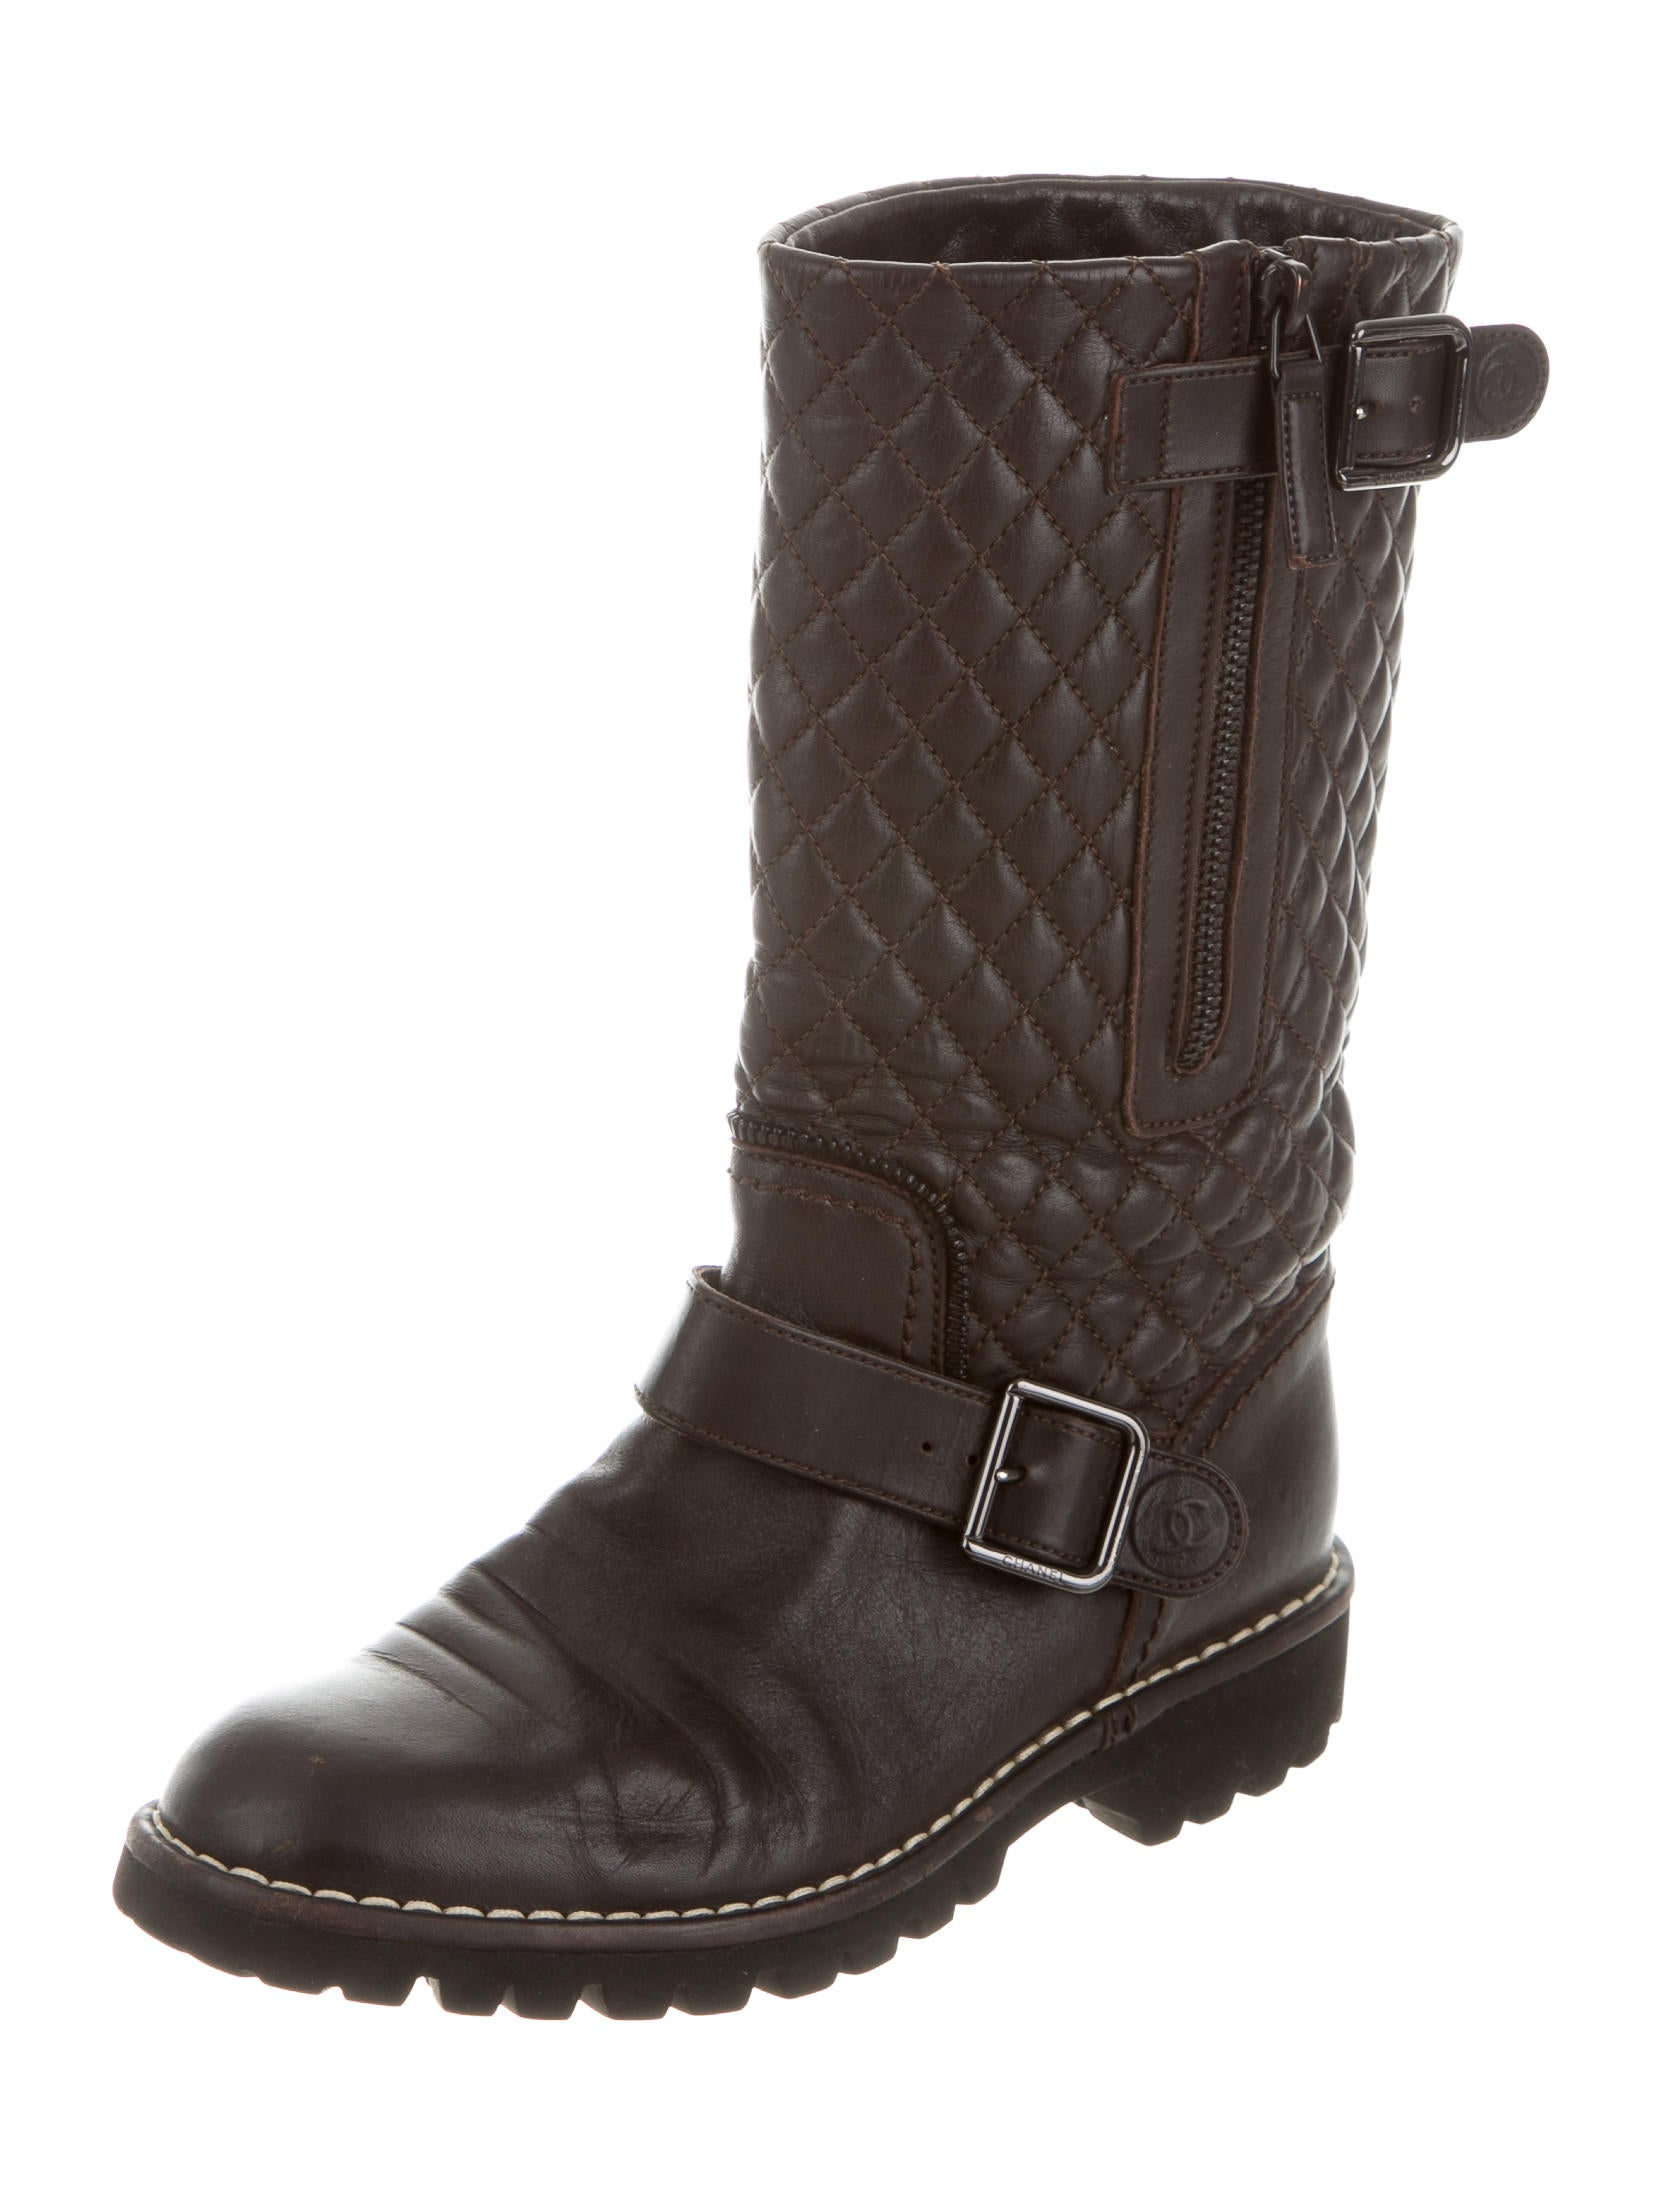 chanel quilted leather ankle boots shoes cha116251